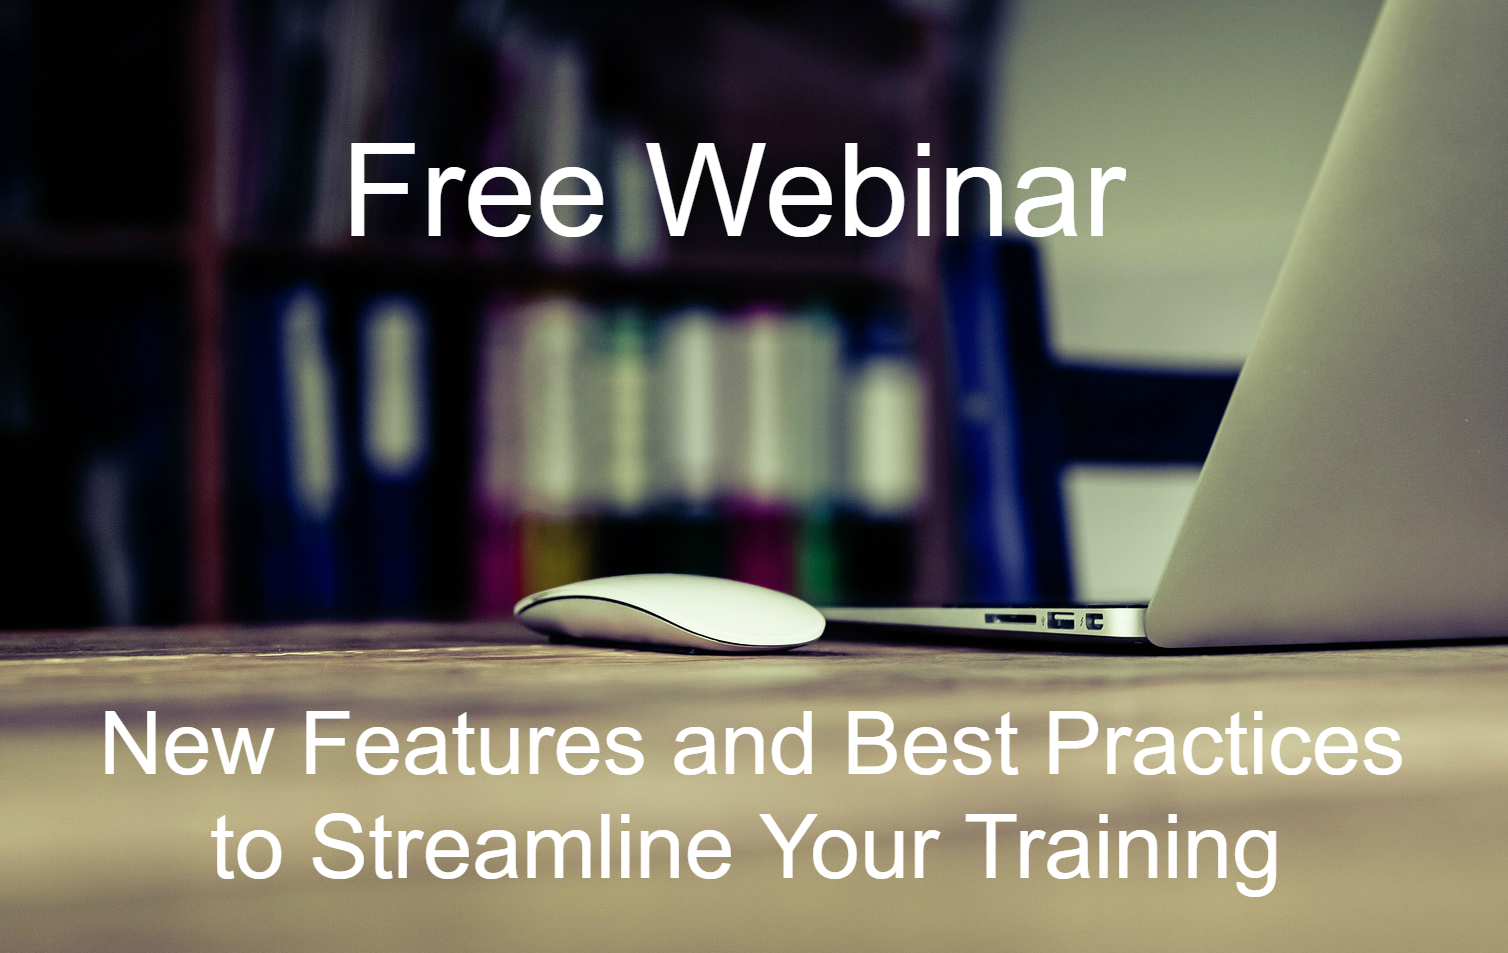 Webinar: New Features and Best Practices to Streamline Your Training